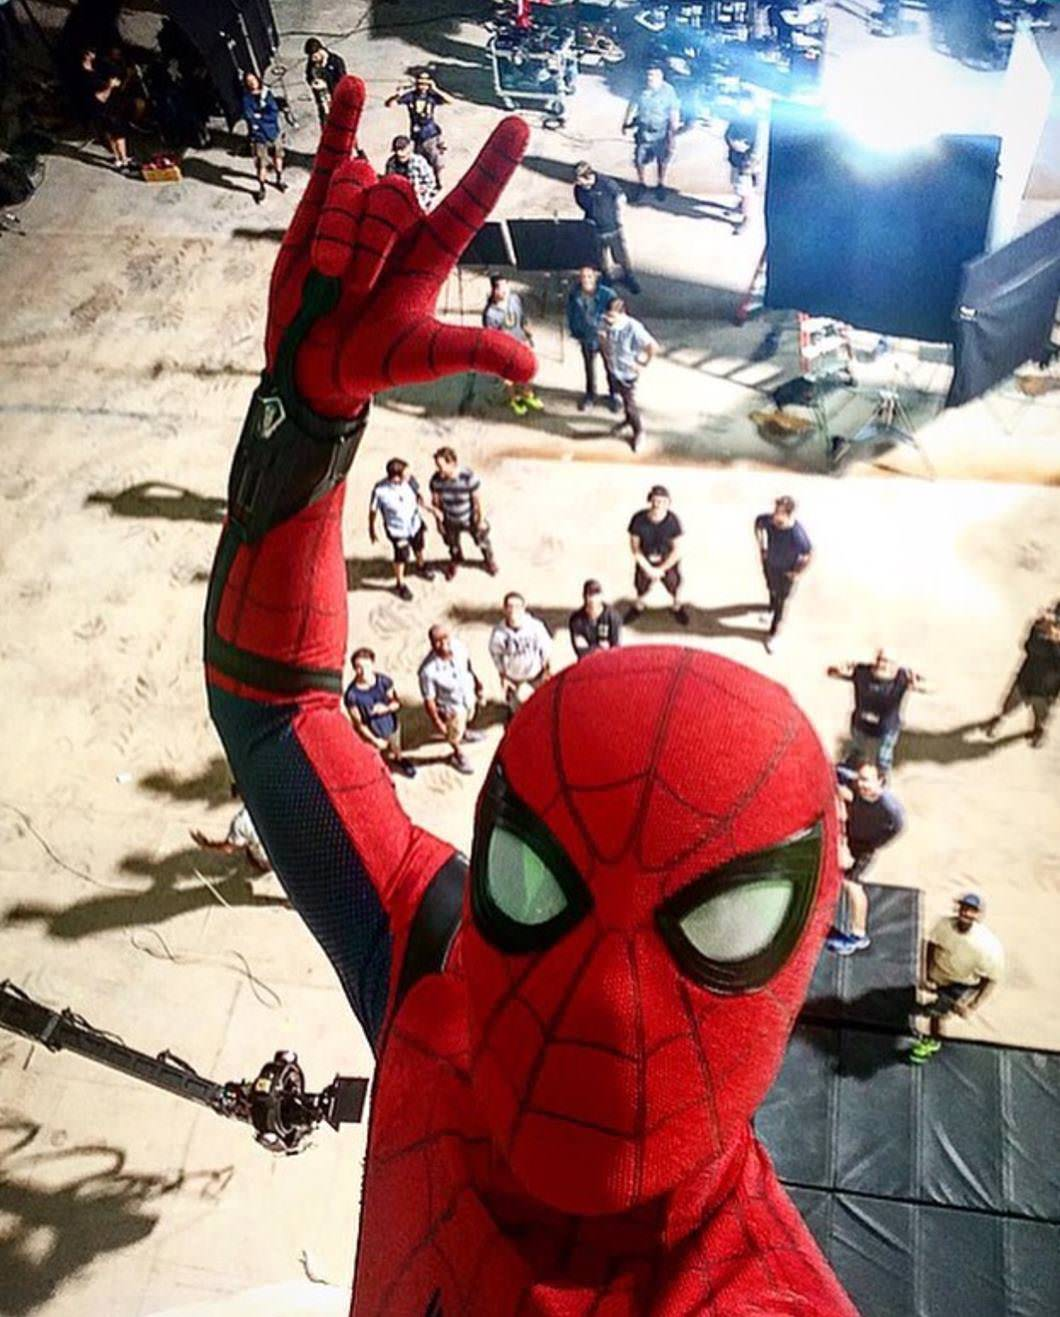 Tom Holland clicks a selfie at the sets of Spider-man Homecoming